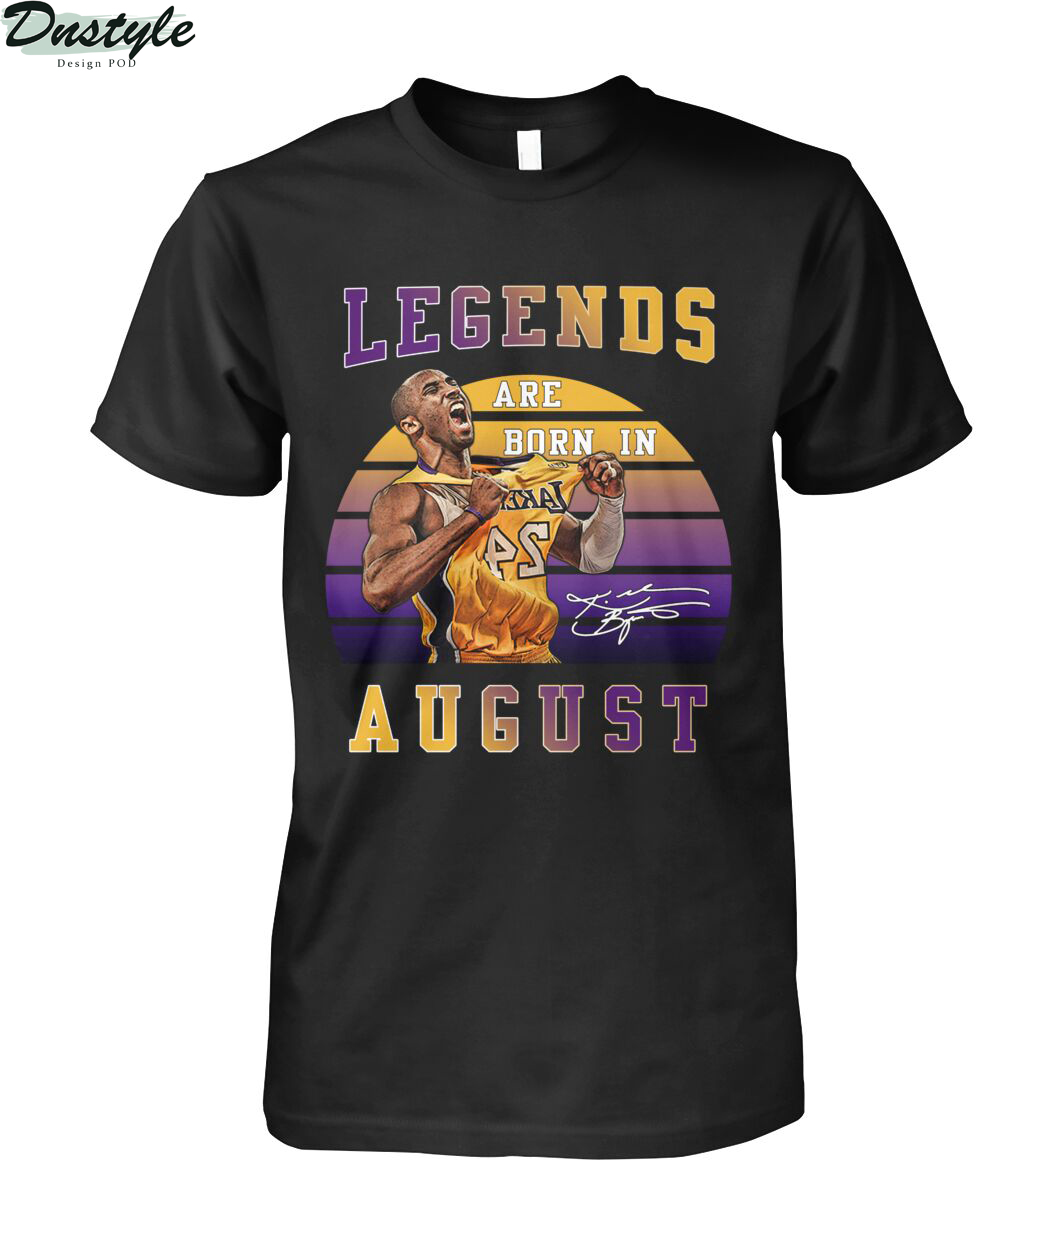 Kobe Bryant signature legends are born in august shirt